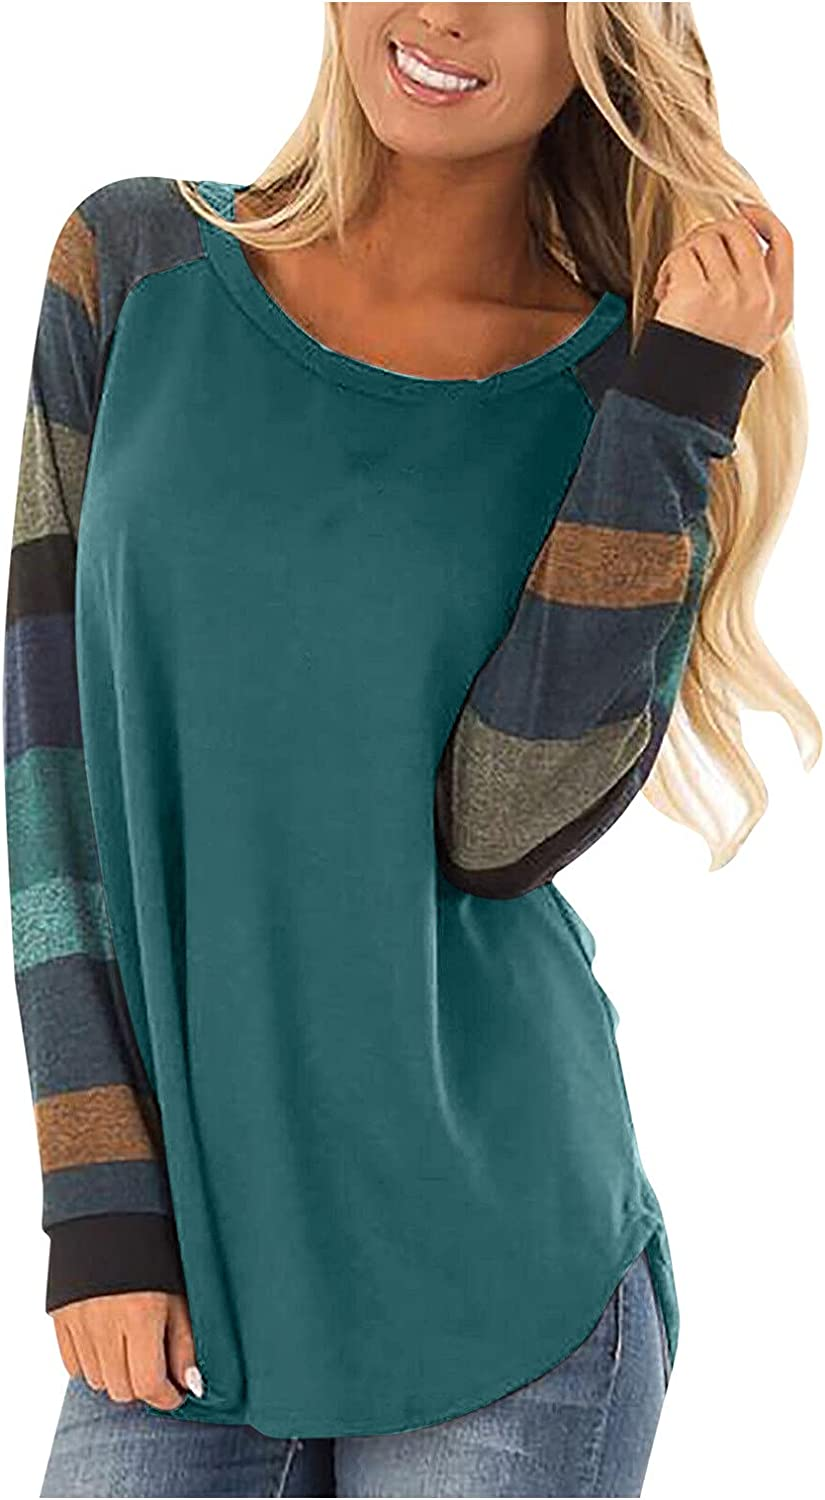 POLLYANNA KEONG Sweatshirts for Teen Girls,Women's Casual Blouse Long Sleeve Colorblock Tops Fall Round Neck Blouses